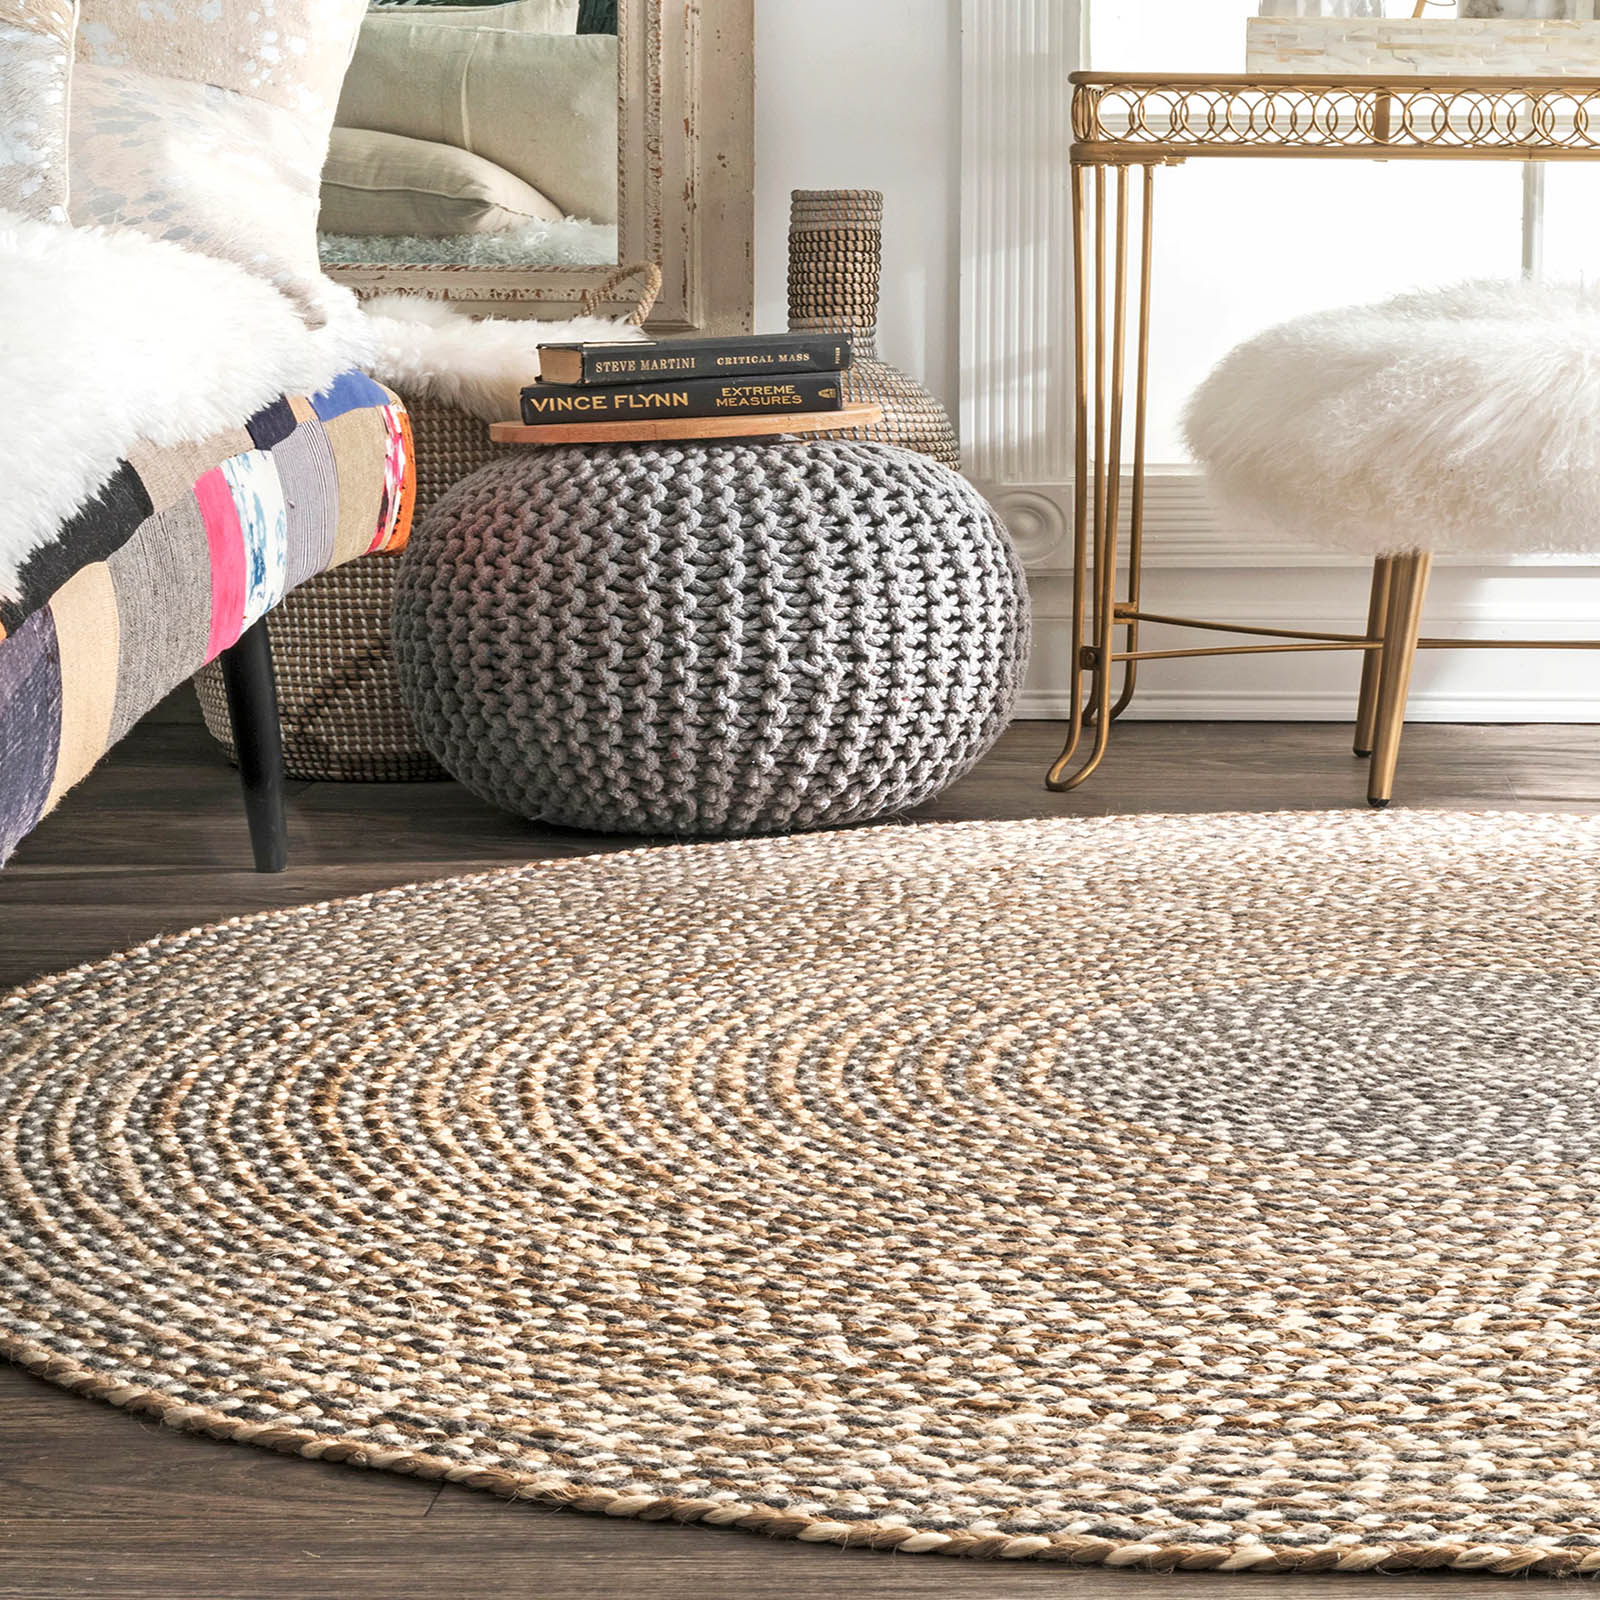 150cm Braided Round handmade Wool Rug JH-2351-L -  سجادة صوف دائرية مضفرة مقاس 150 سم - Shop Online Furniture and Home Decor Store in Dubai, UAE at ebarza